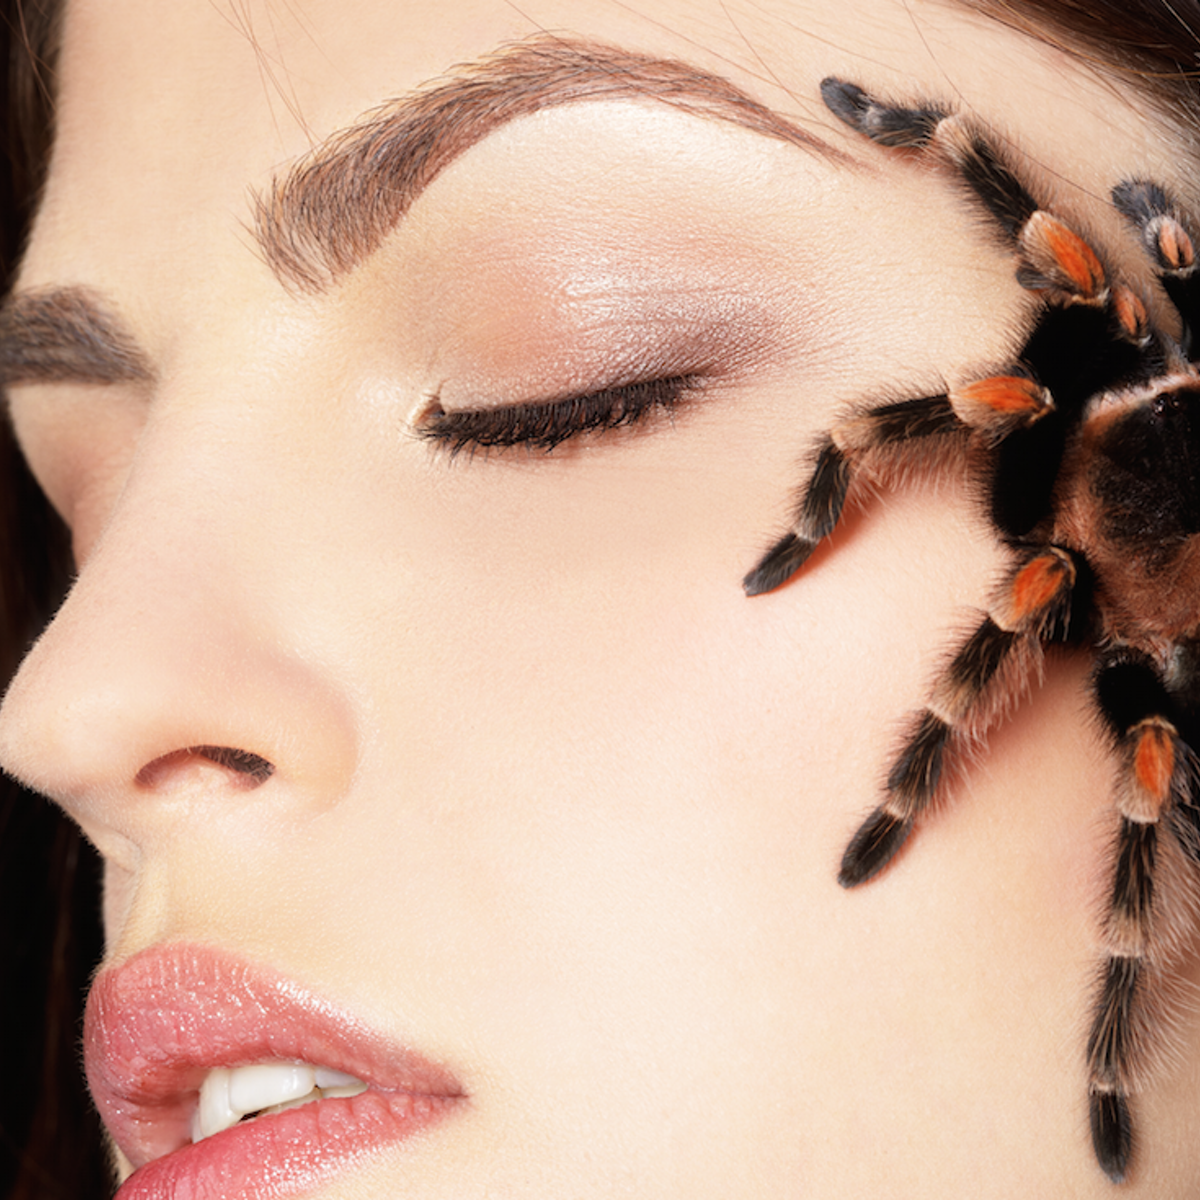 Busted myths: what spiders, chewing gum and haemorrhoids